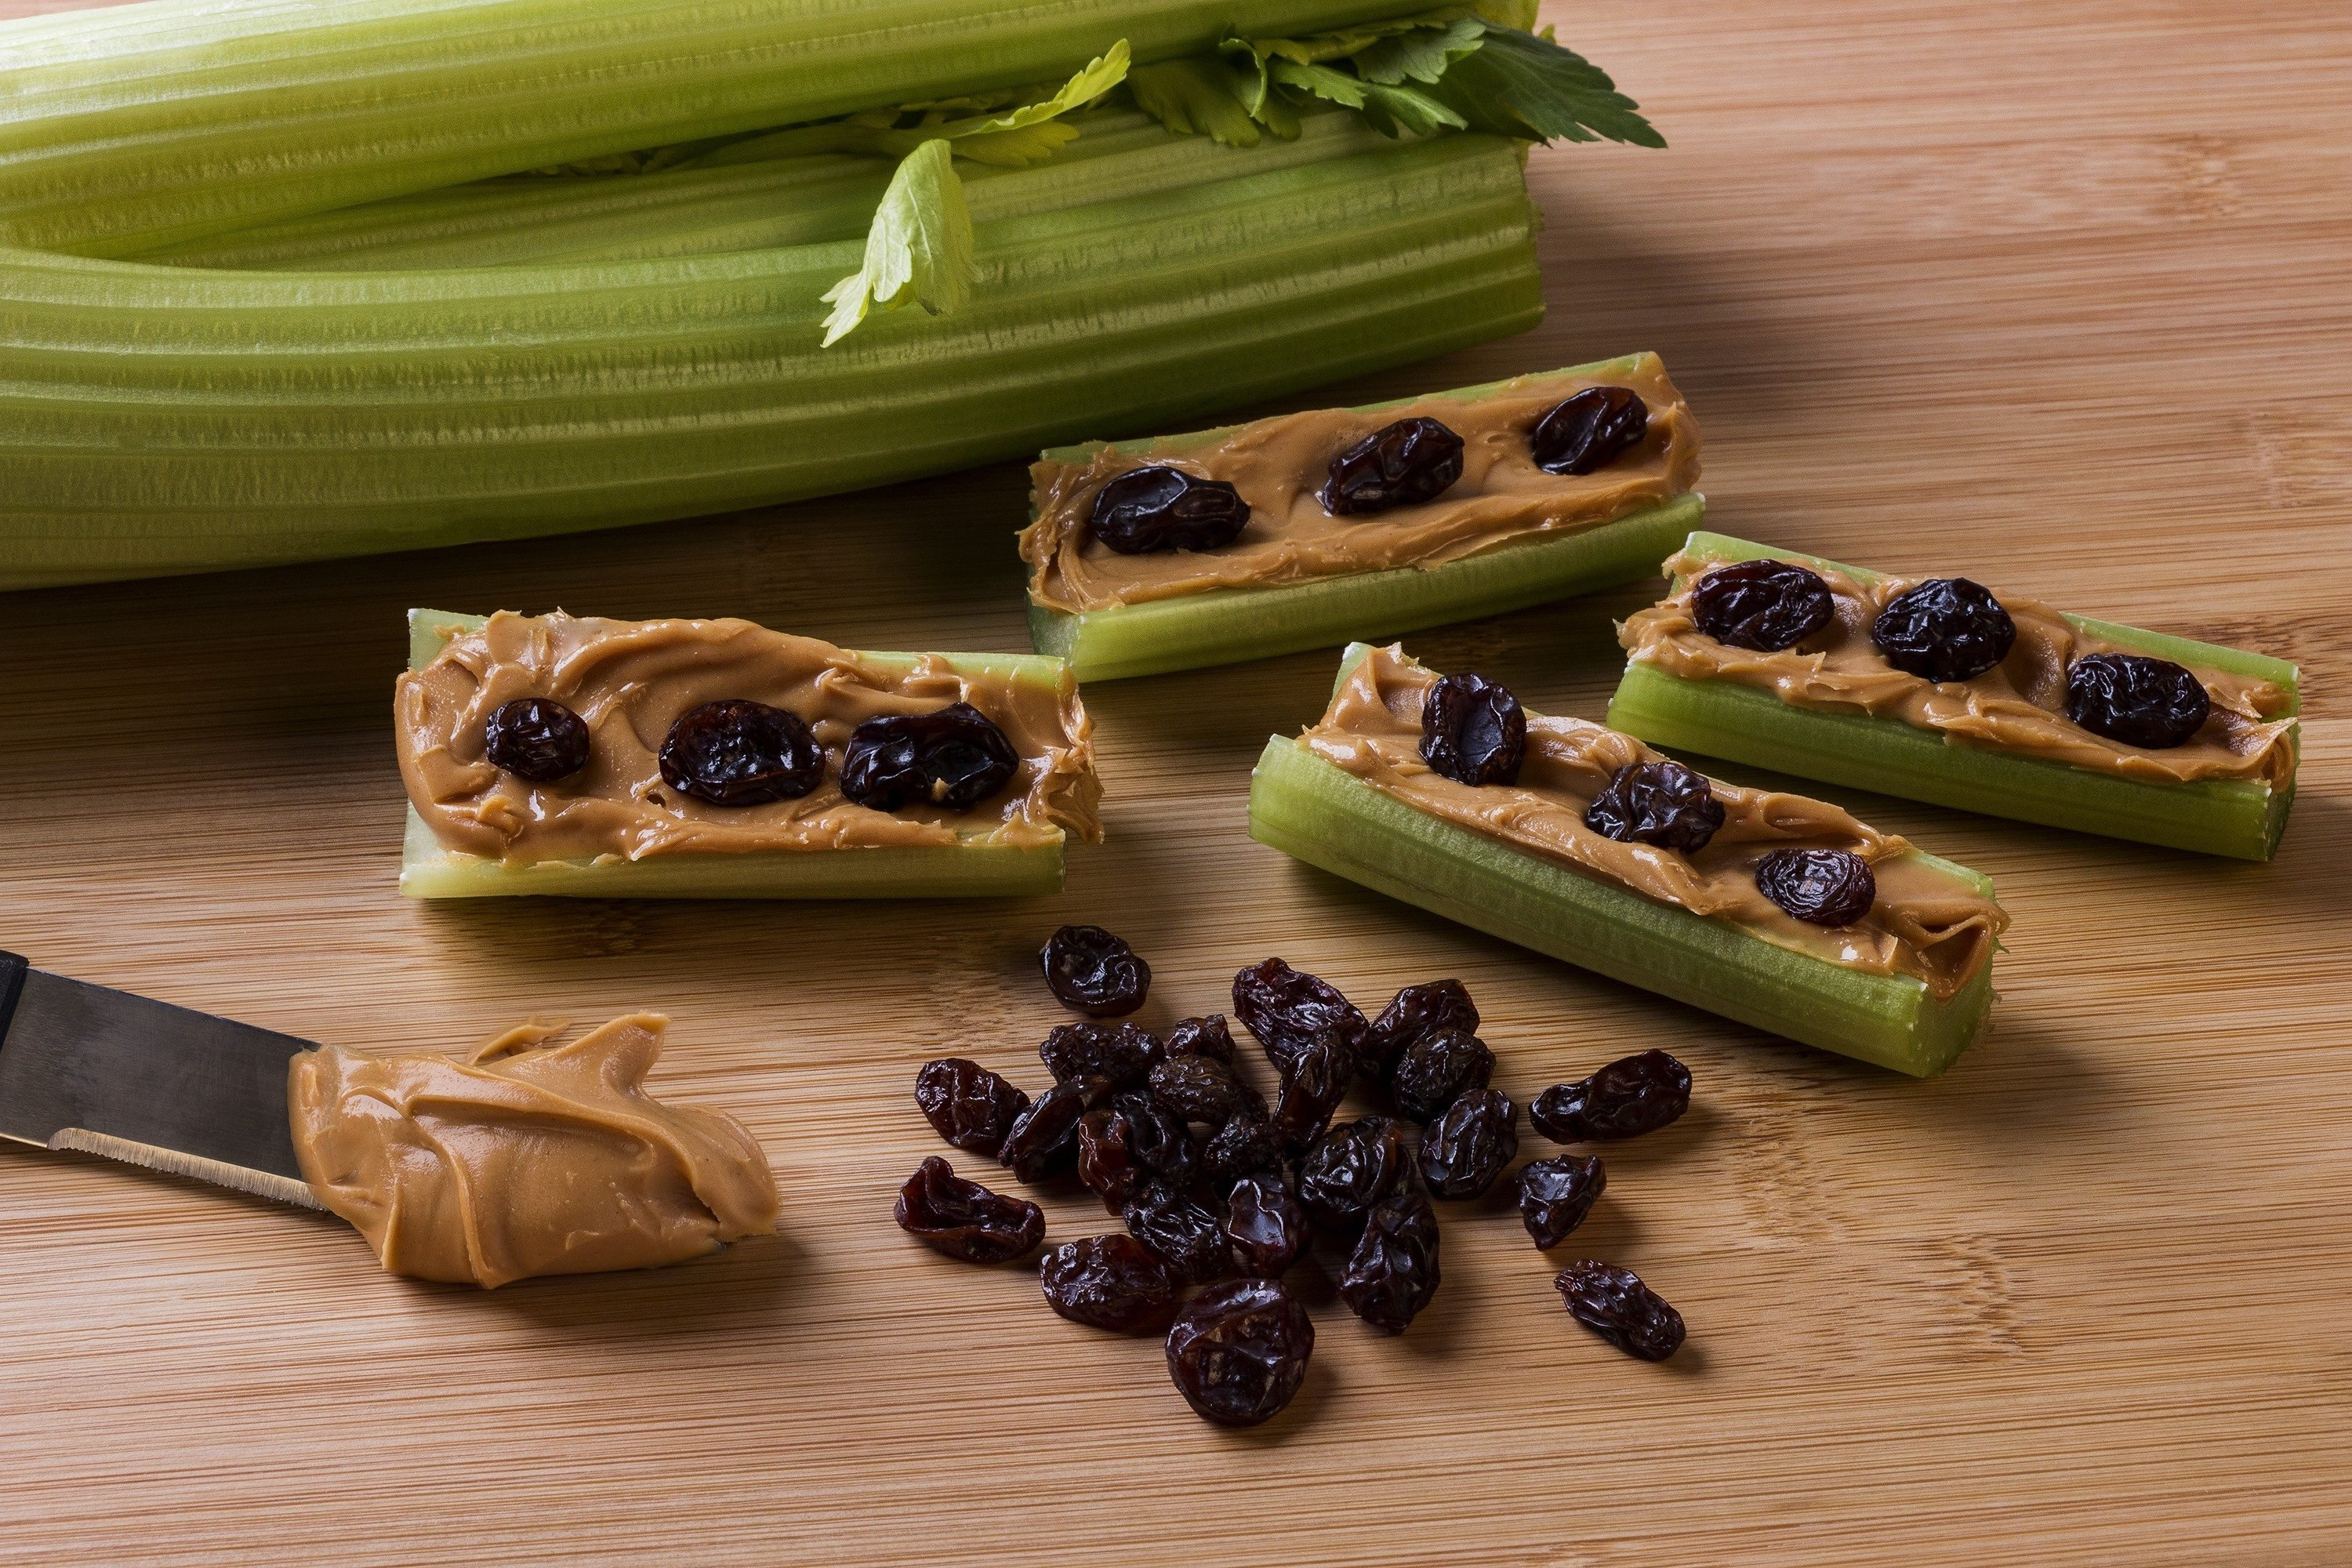 Childhood snack called Ants on a log.